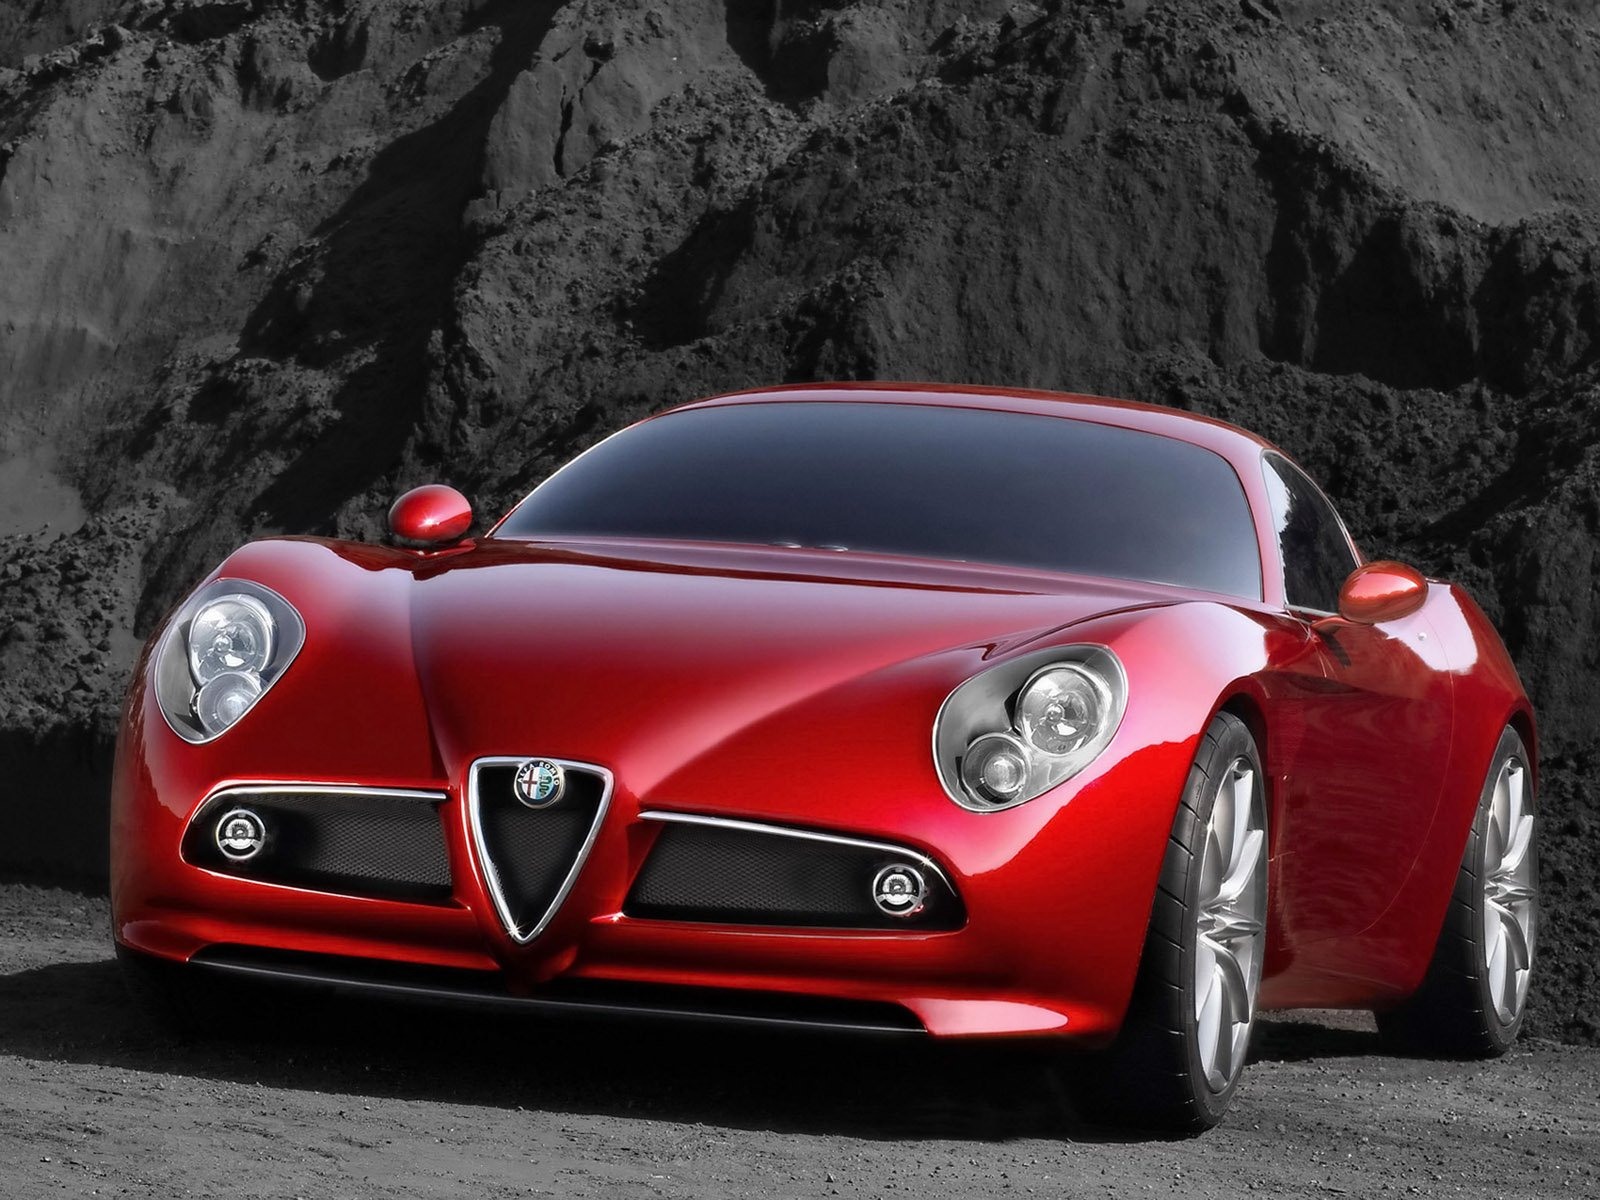 Alfa Romeo Targets 8 New Models To Hit Ambitious Global Sales Goal Of 400,000 Units By 2018